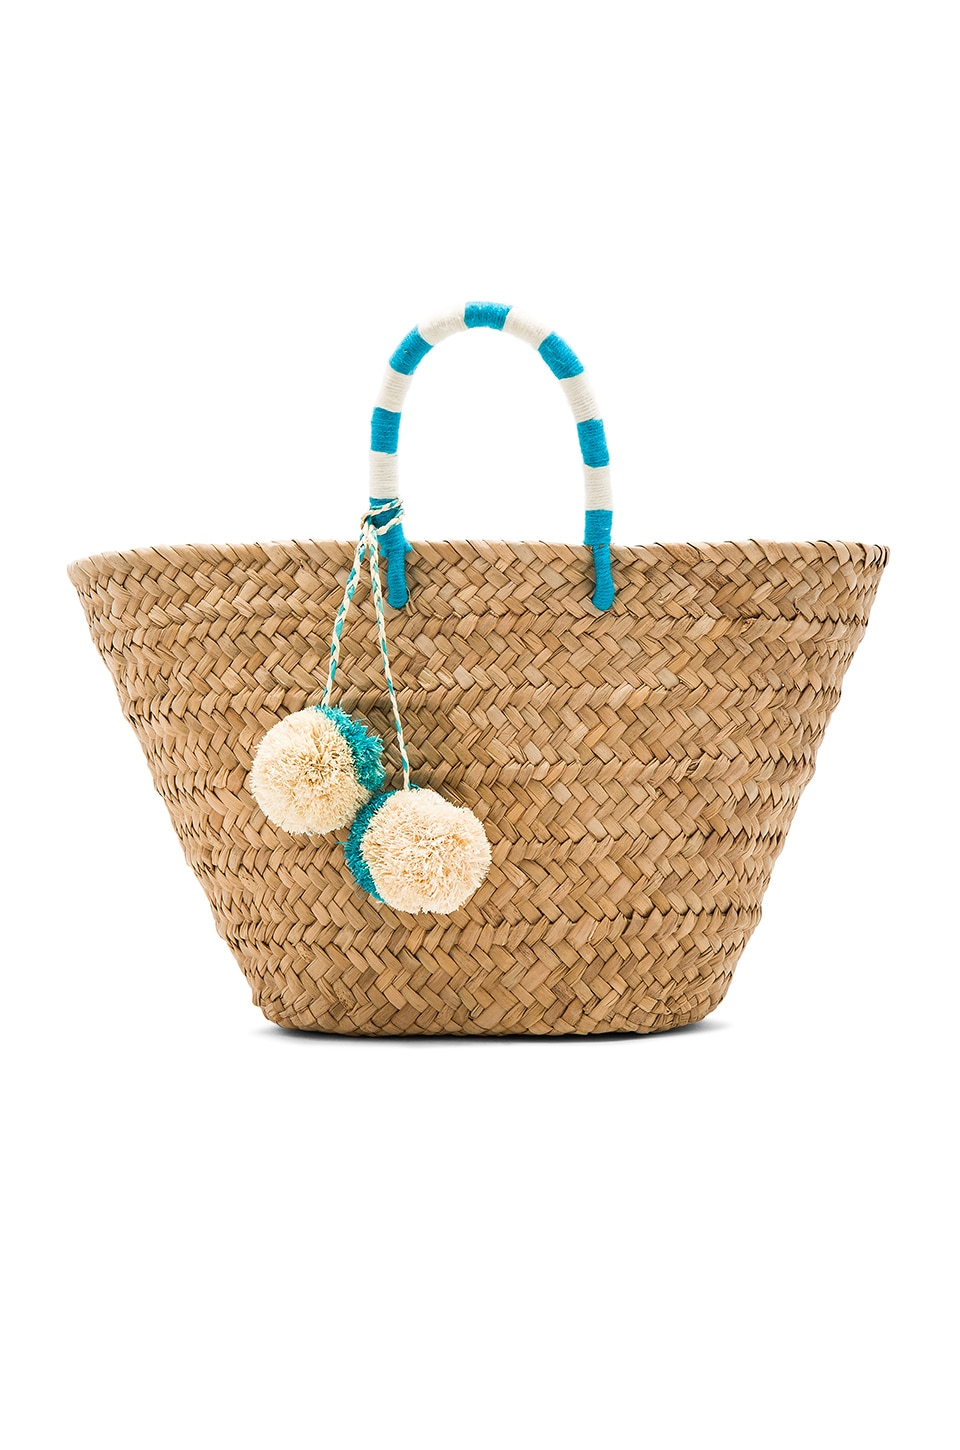 KAYU St Tropez Tote Bag in Turquoise